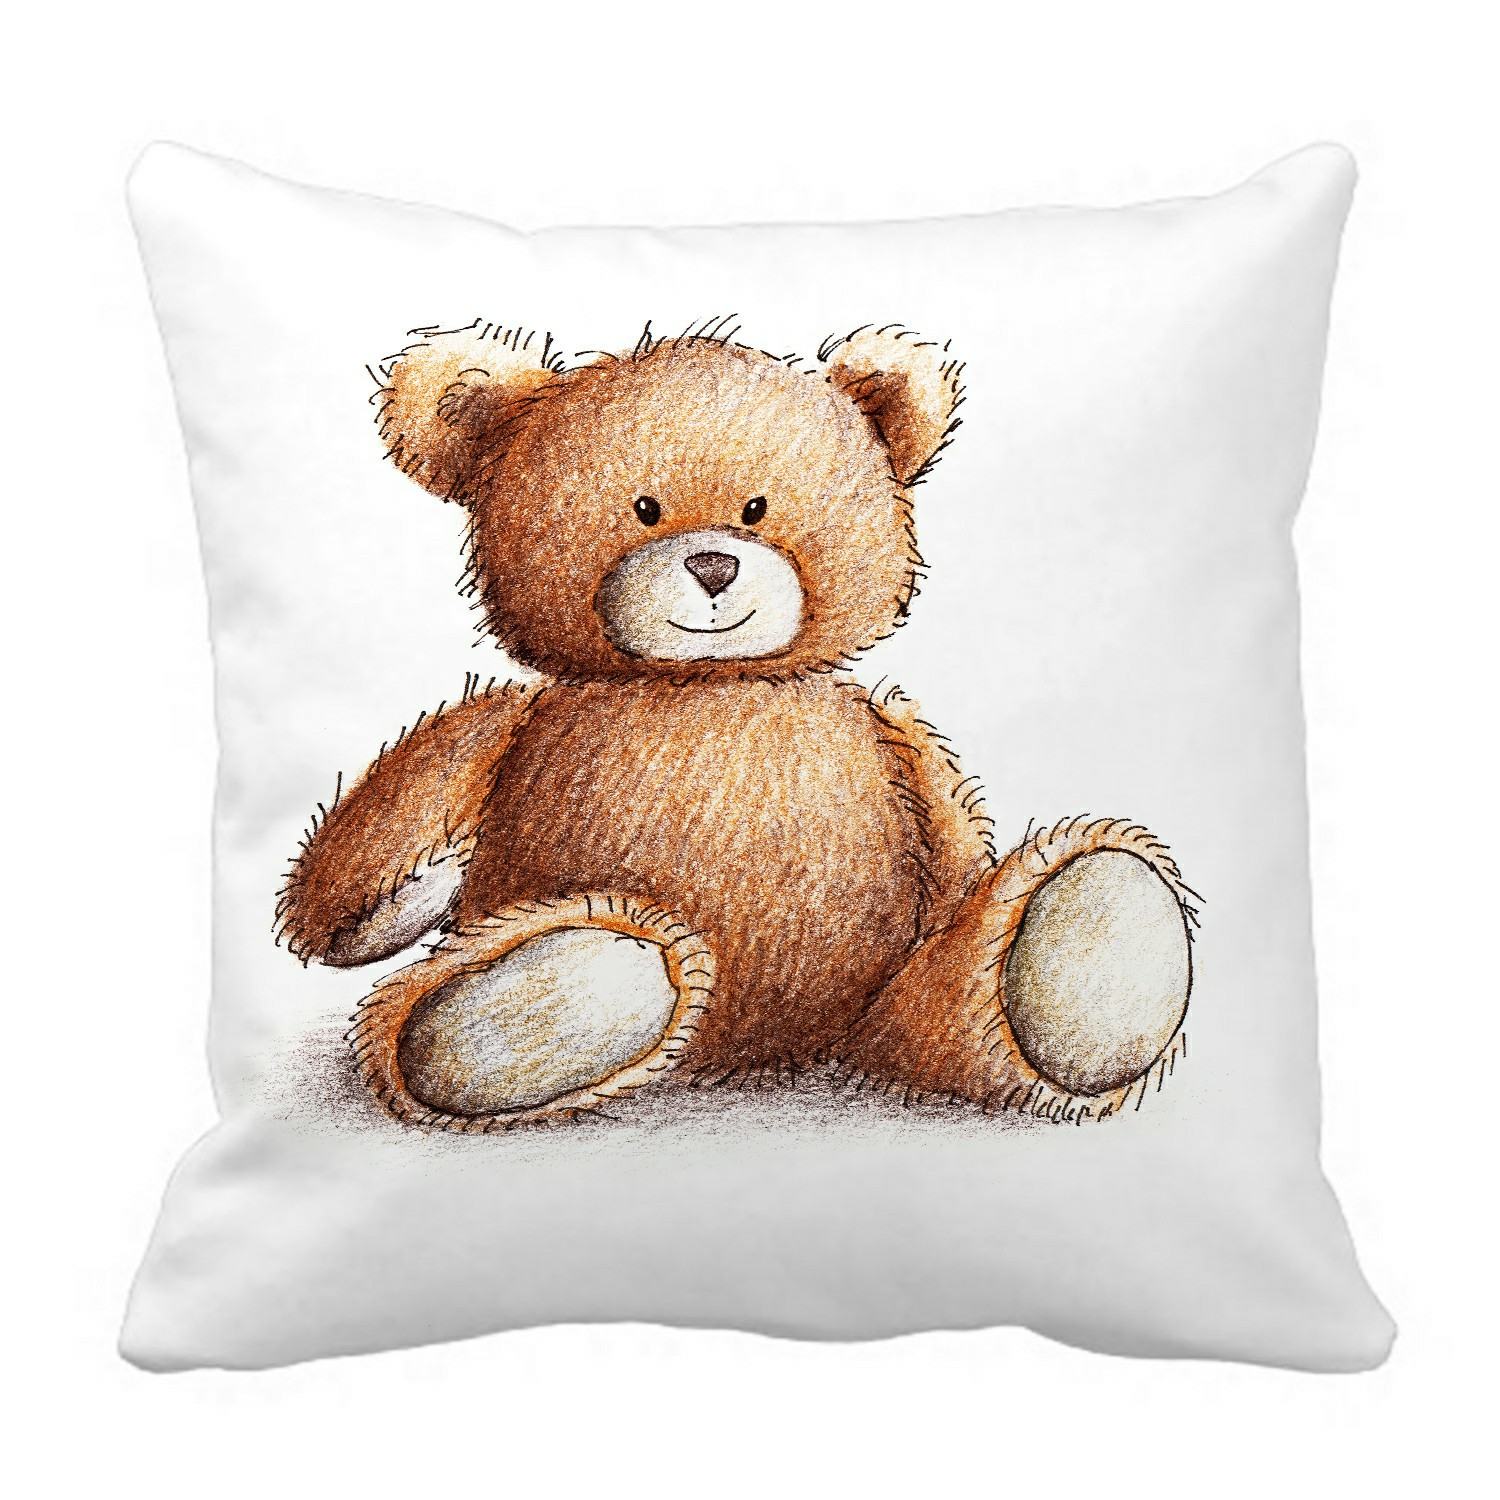 eczjnt cute teddy bear on white pillow case pillow cover cushion cover 16x16 inch